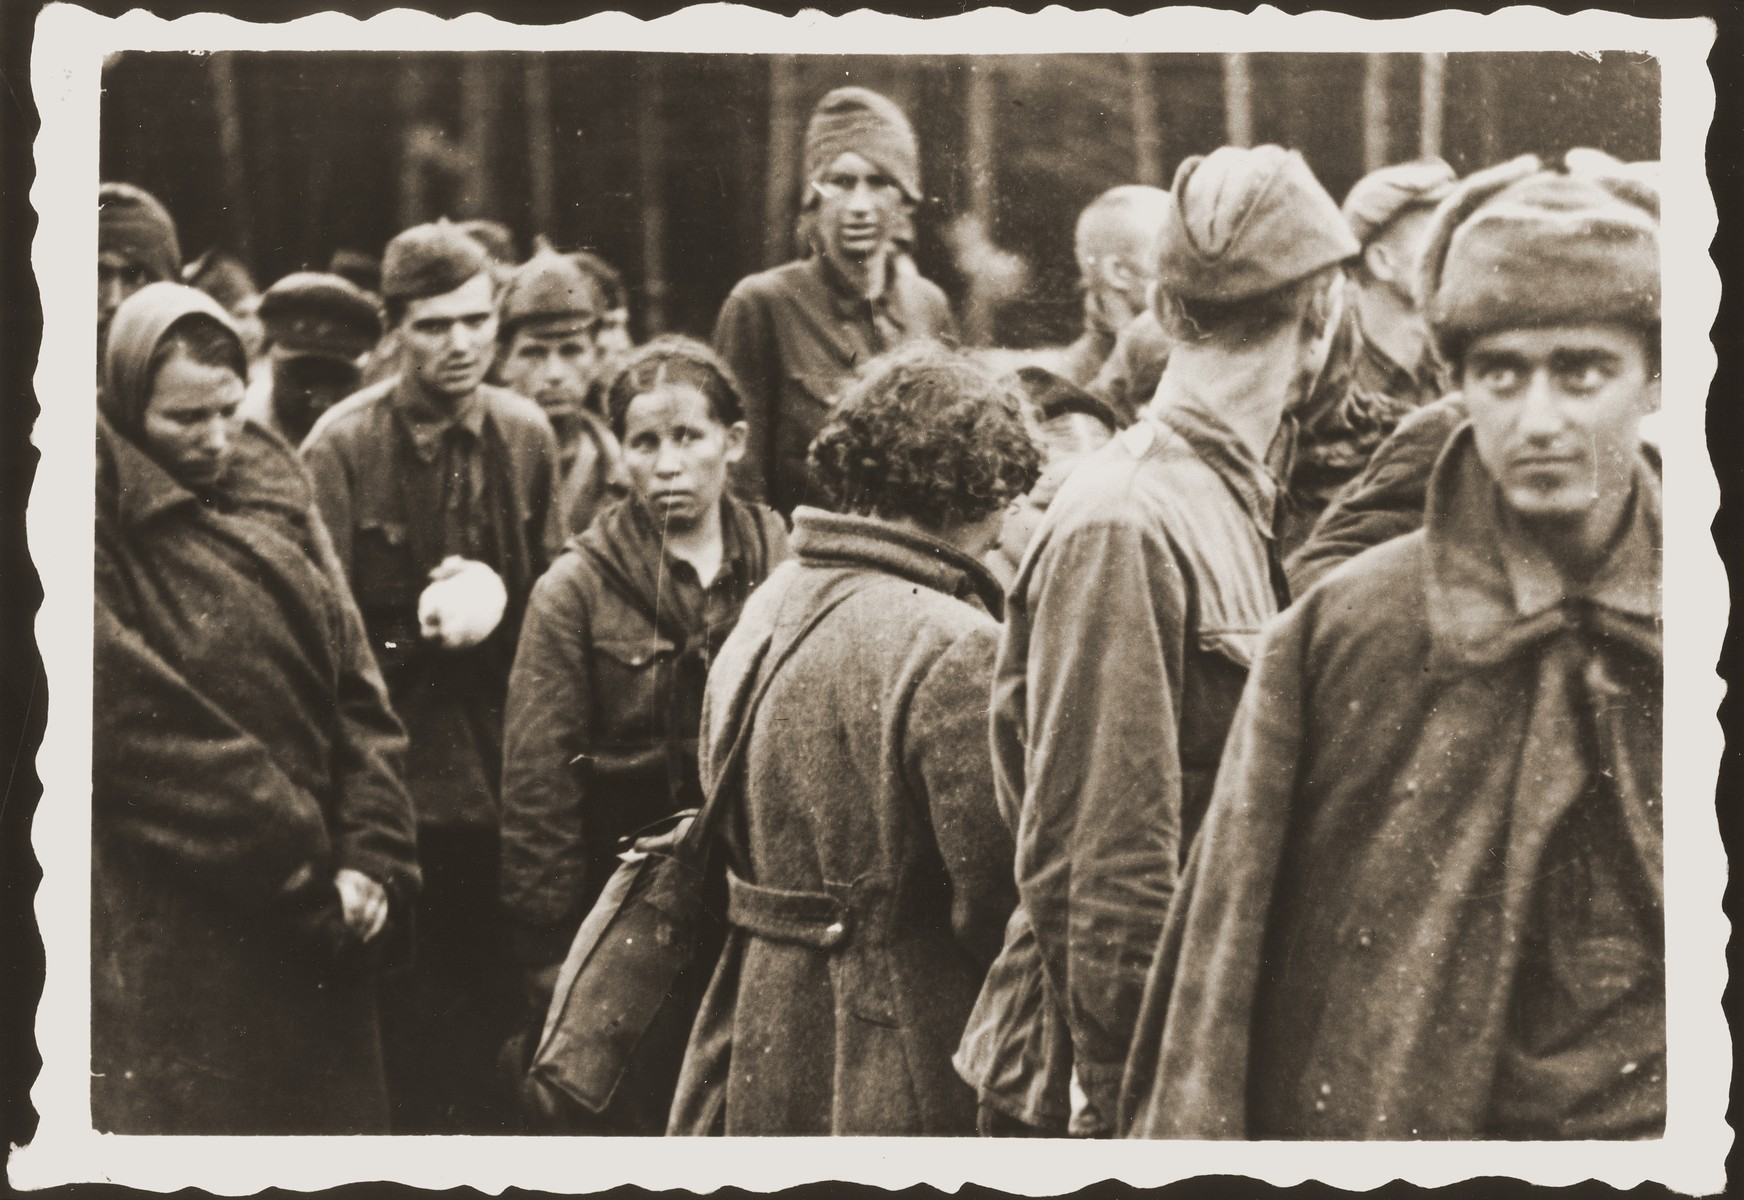 Soviet prisoners at the Deblin prisoner of war camp in Poland.